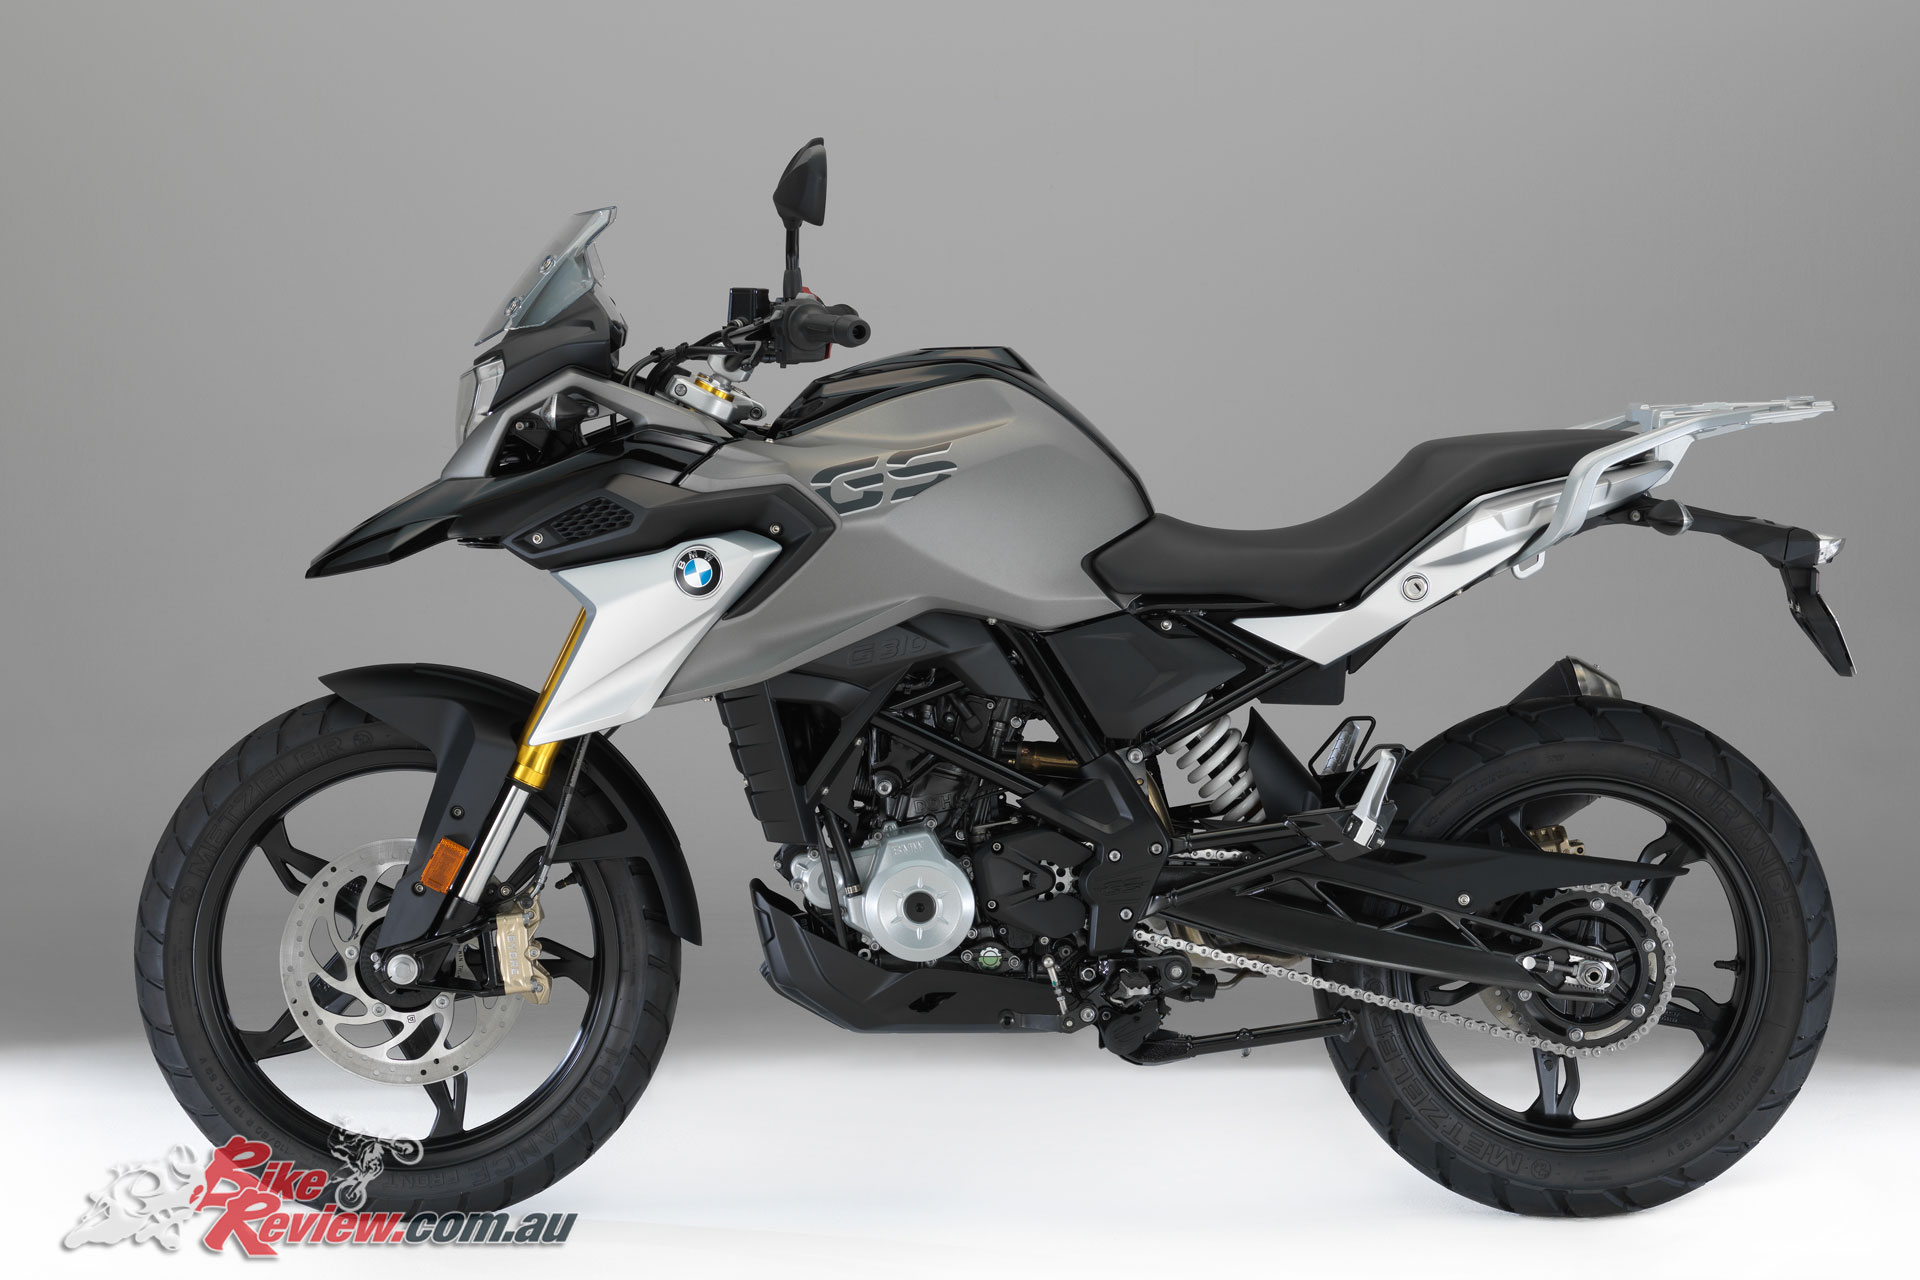 bmw 39 s g 310 gs arrives october for 6 900 mrlp orc. Black Bedroom Furniture Sets. Home Design Ideas